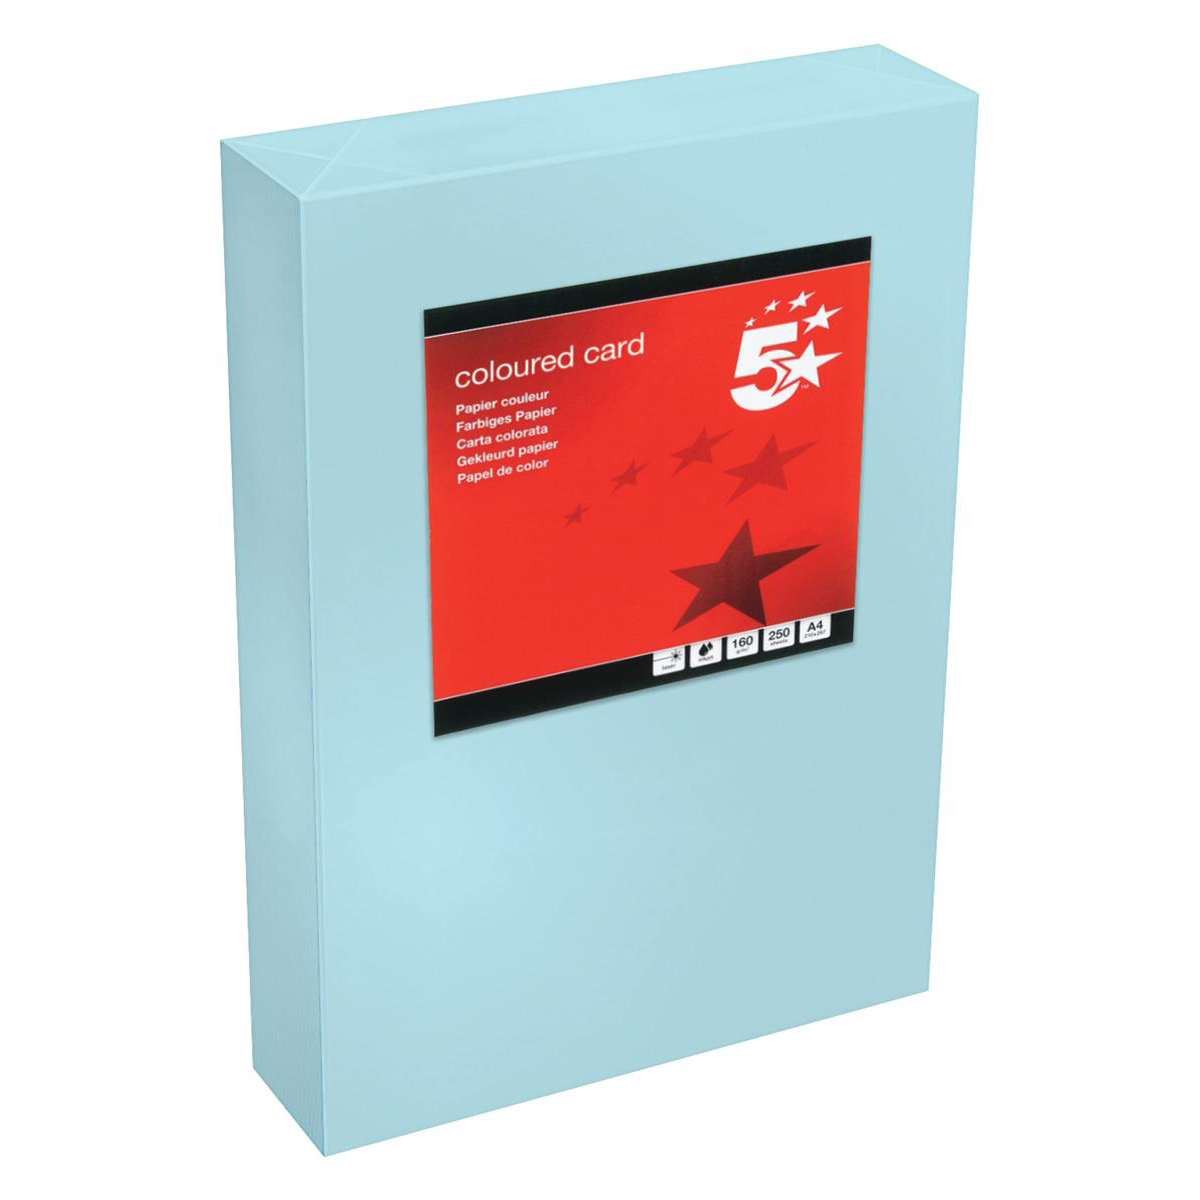 Card (160g+) 5 Star Office Coloured Card Tinted 160gsm A4 Medium Blue Pack 250